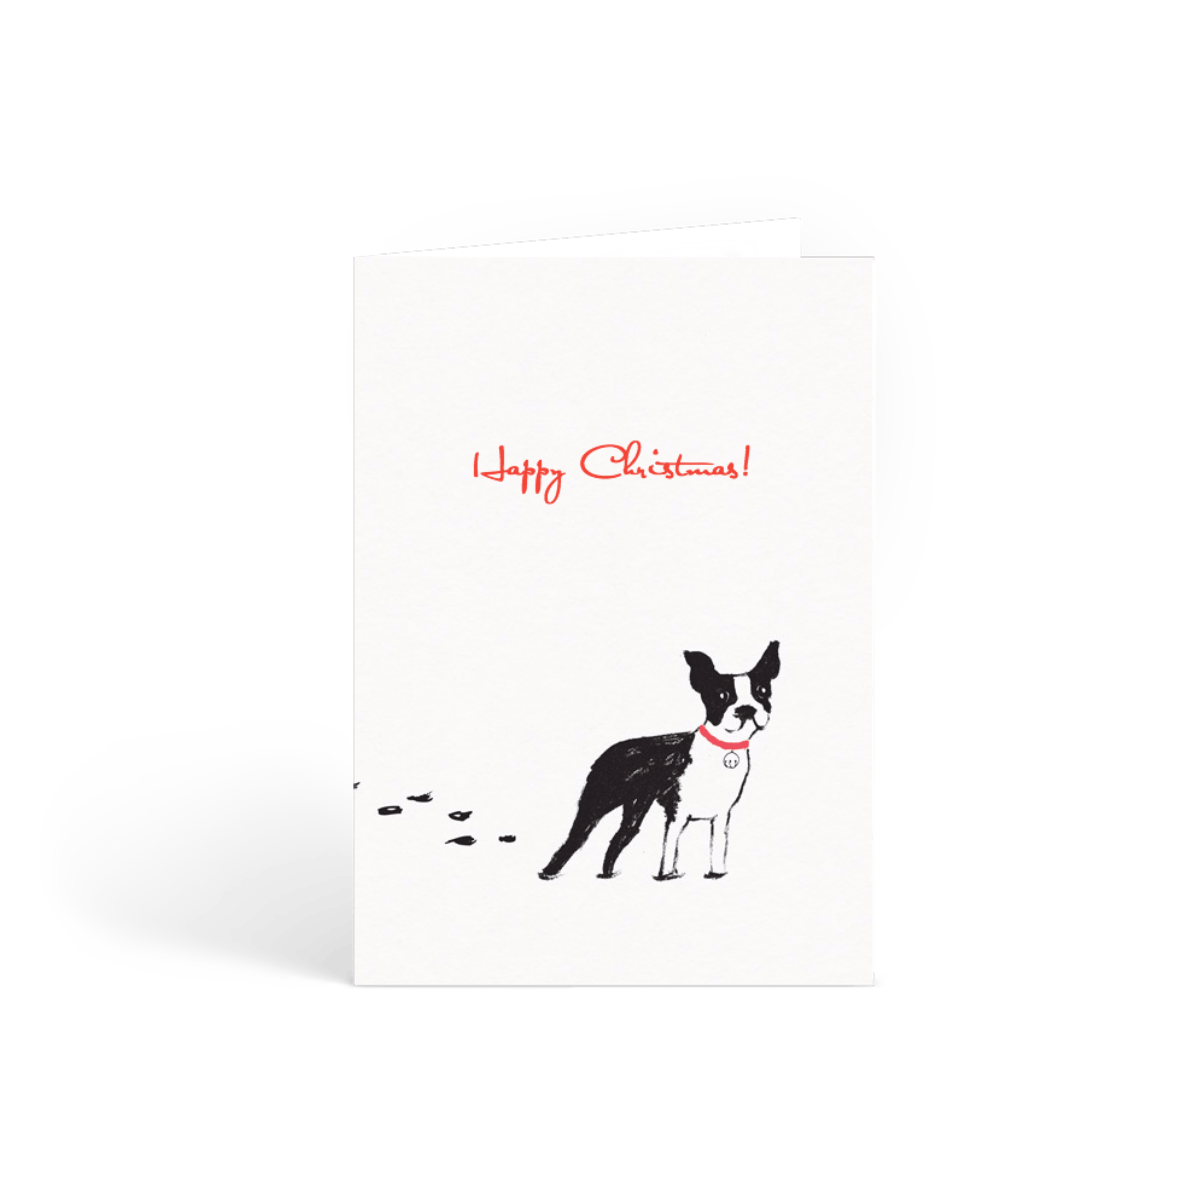 Https%3a%2f%2fwww.papier.com%2fproduct image%2f12009%2f2%2fchristmas pup 3029 front 1476098992.png?ixlib=rb 1.1